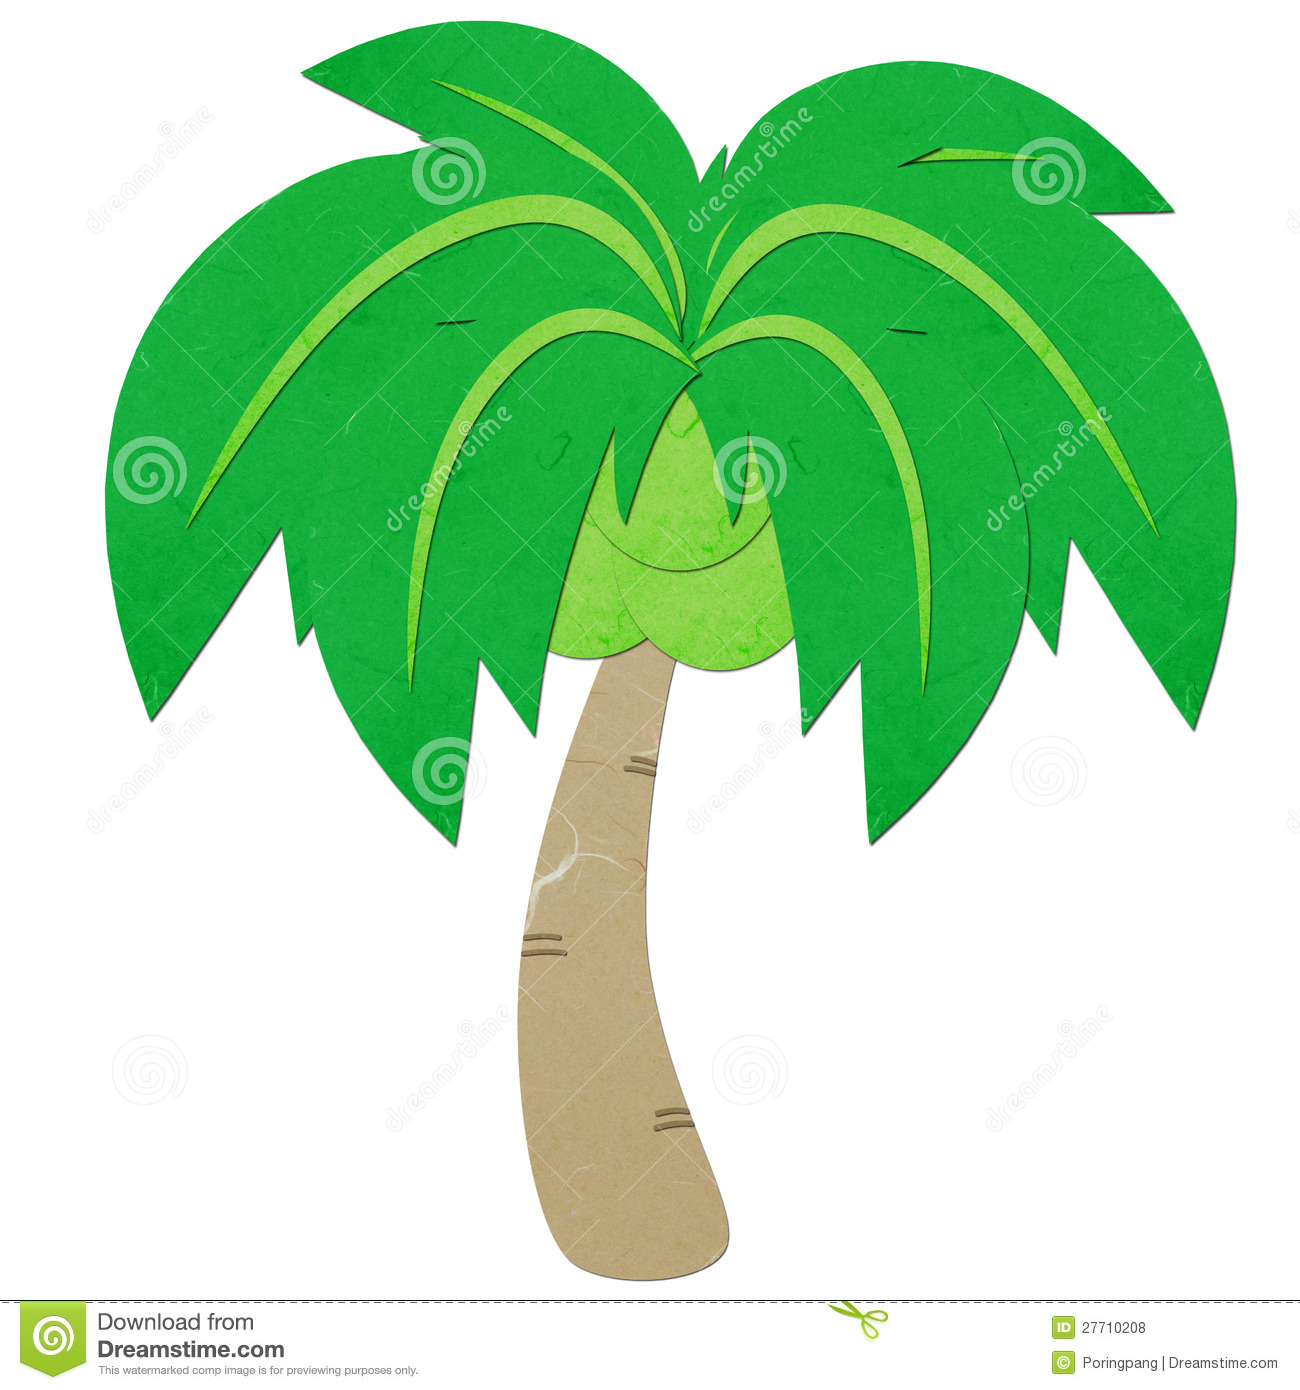 Essay on coconut tree